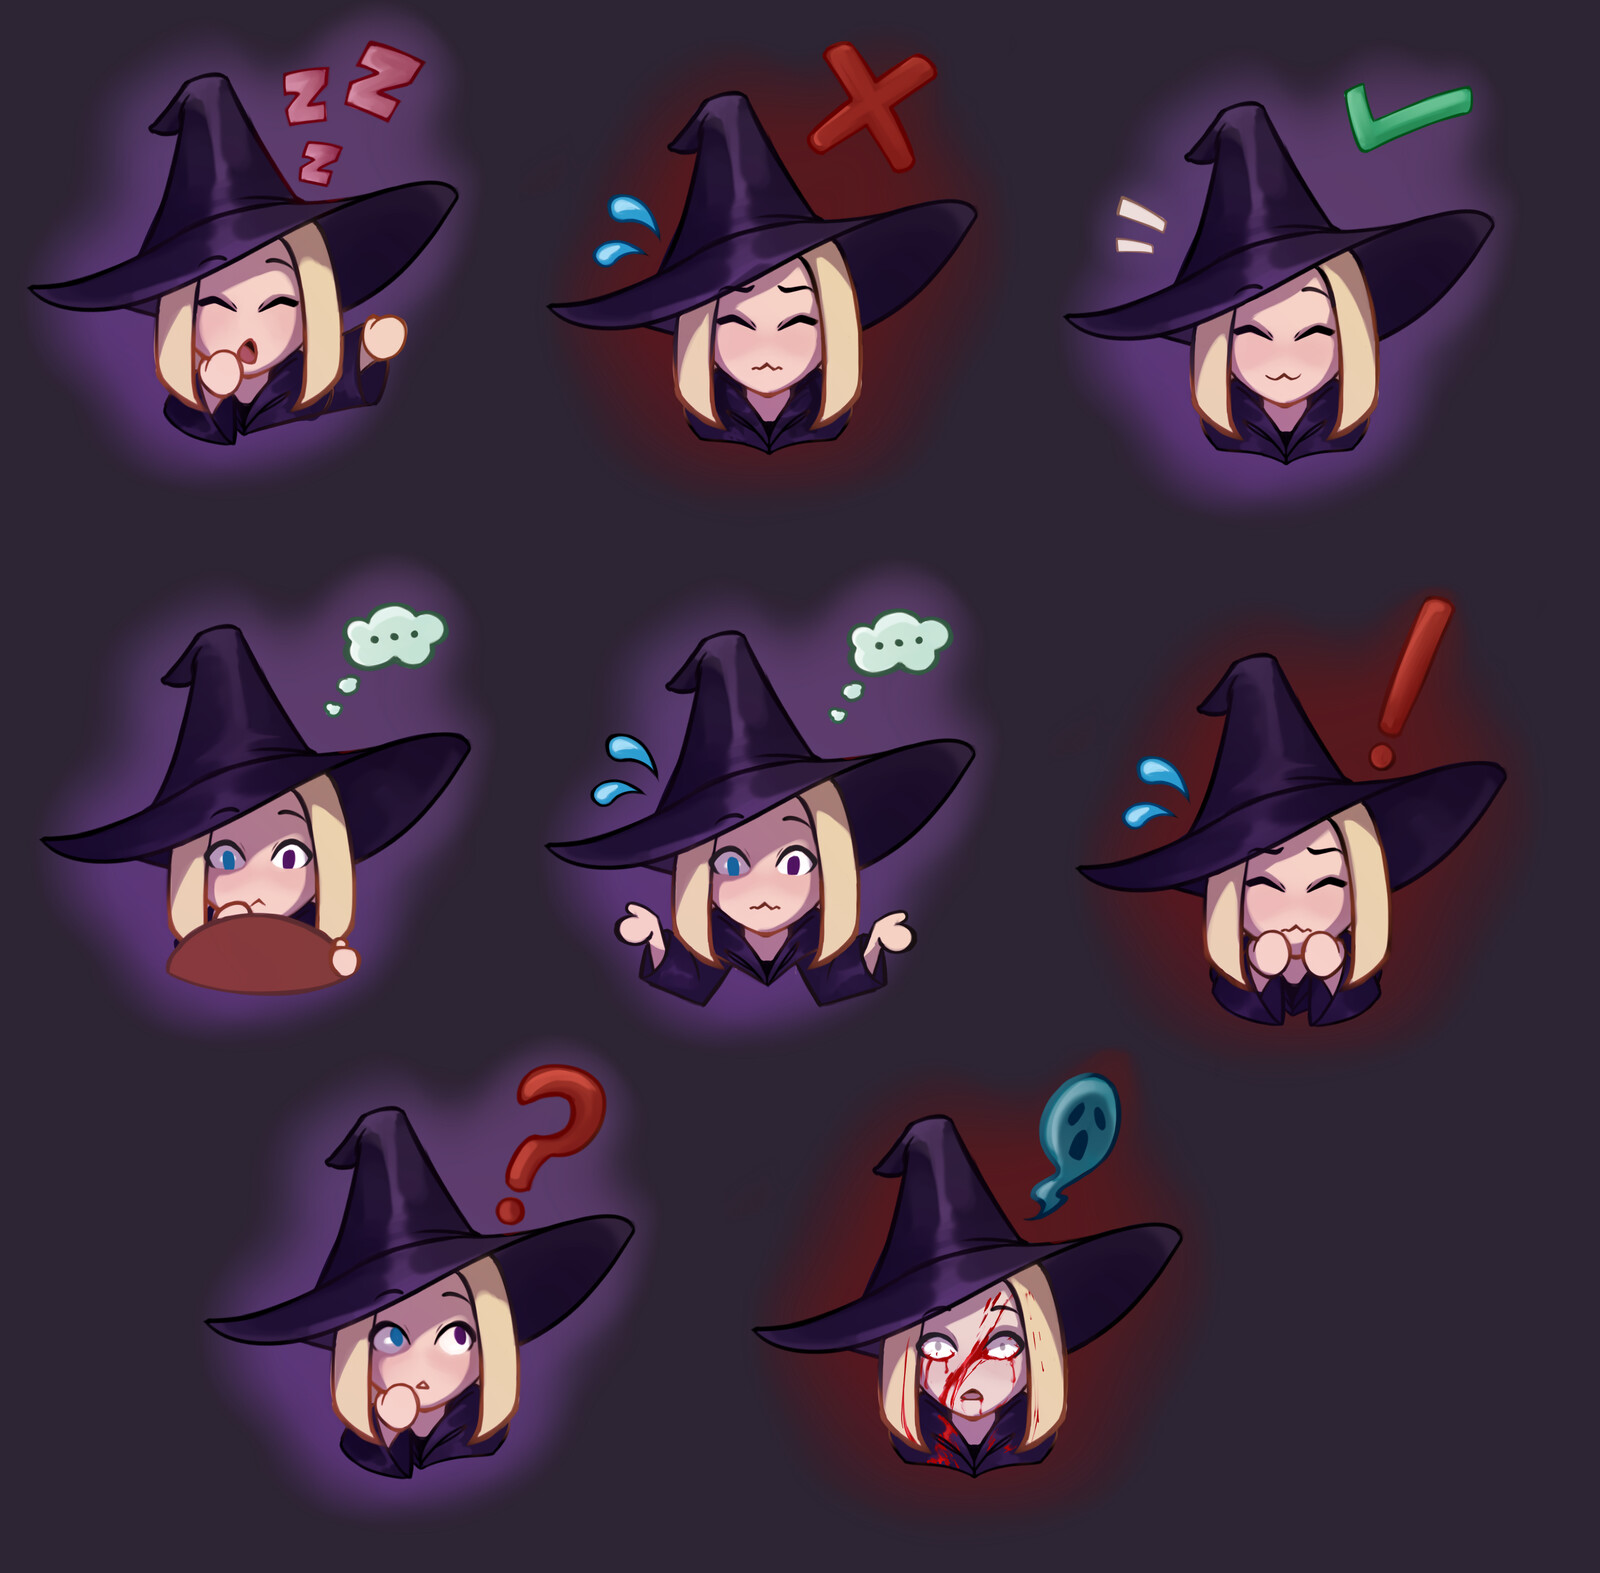 All emotes in the game to give the player feedback